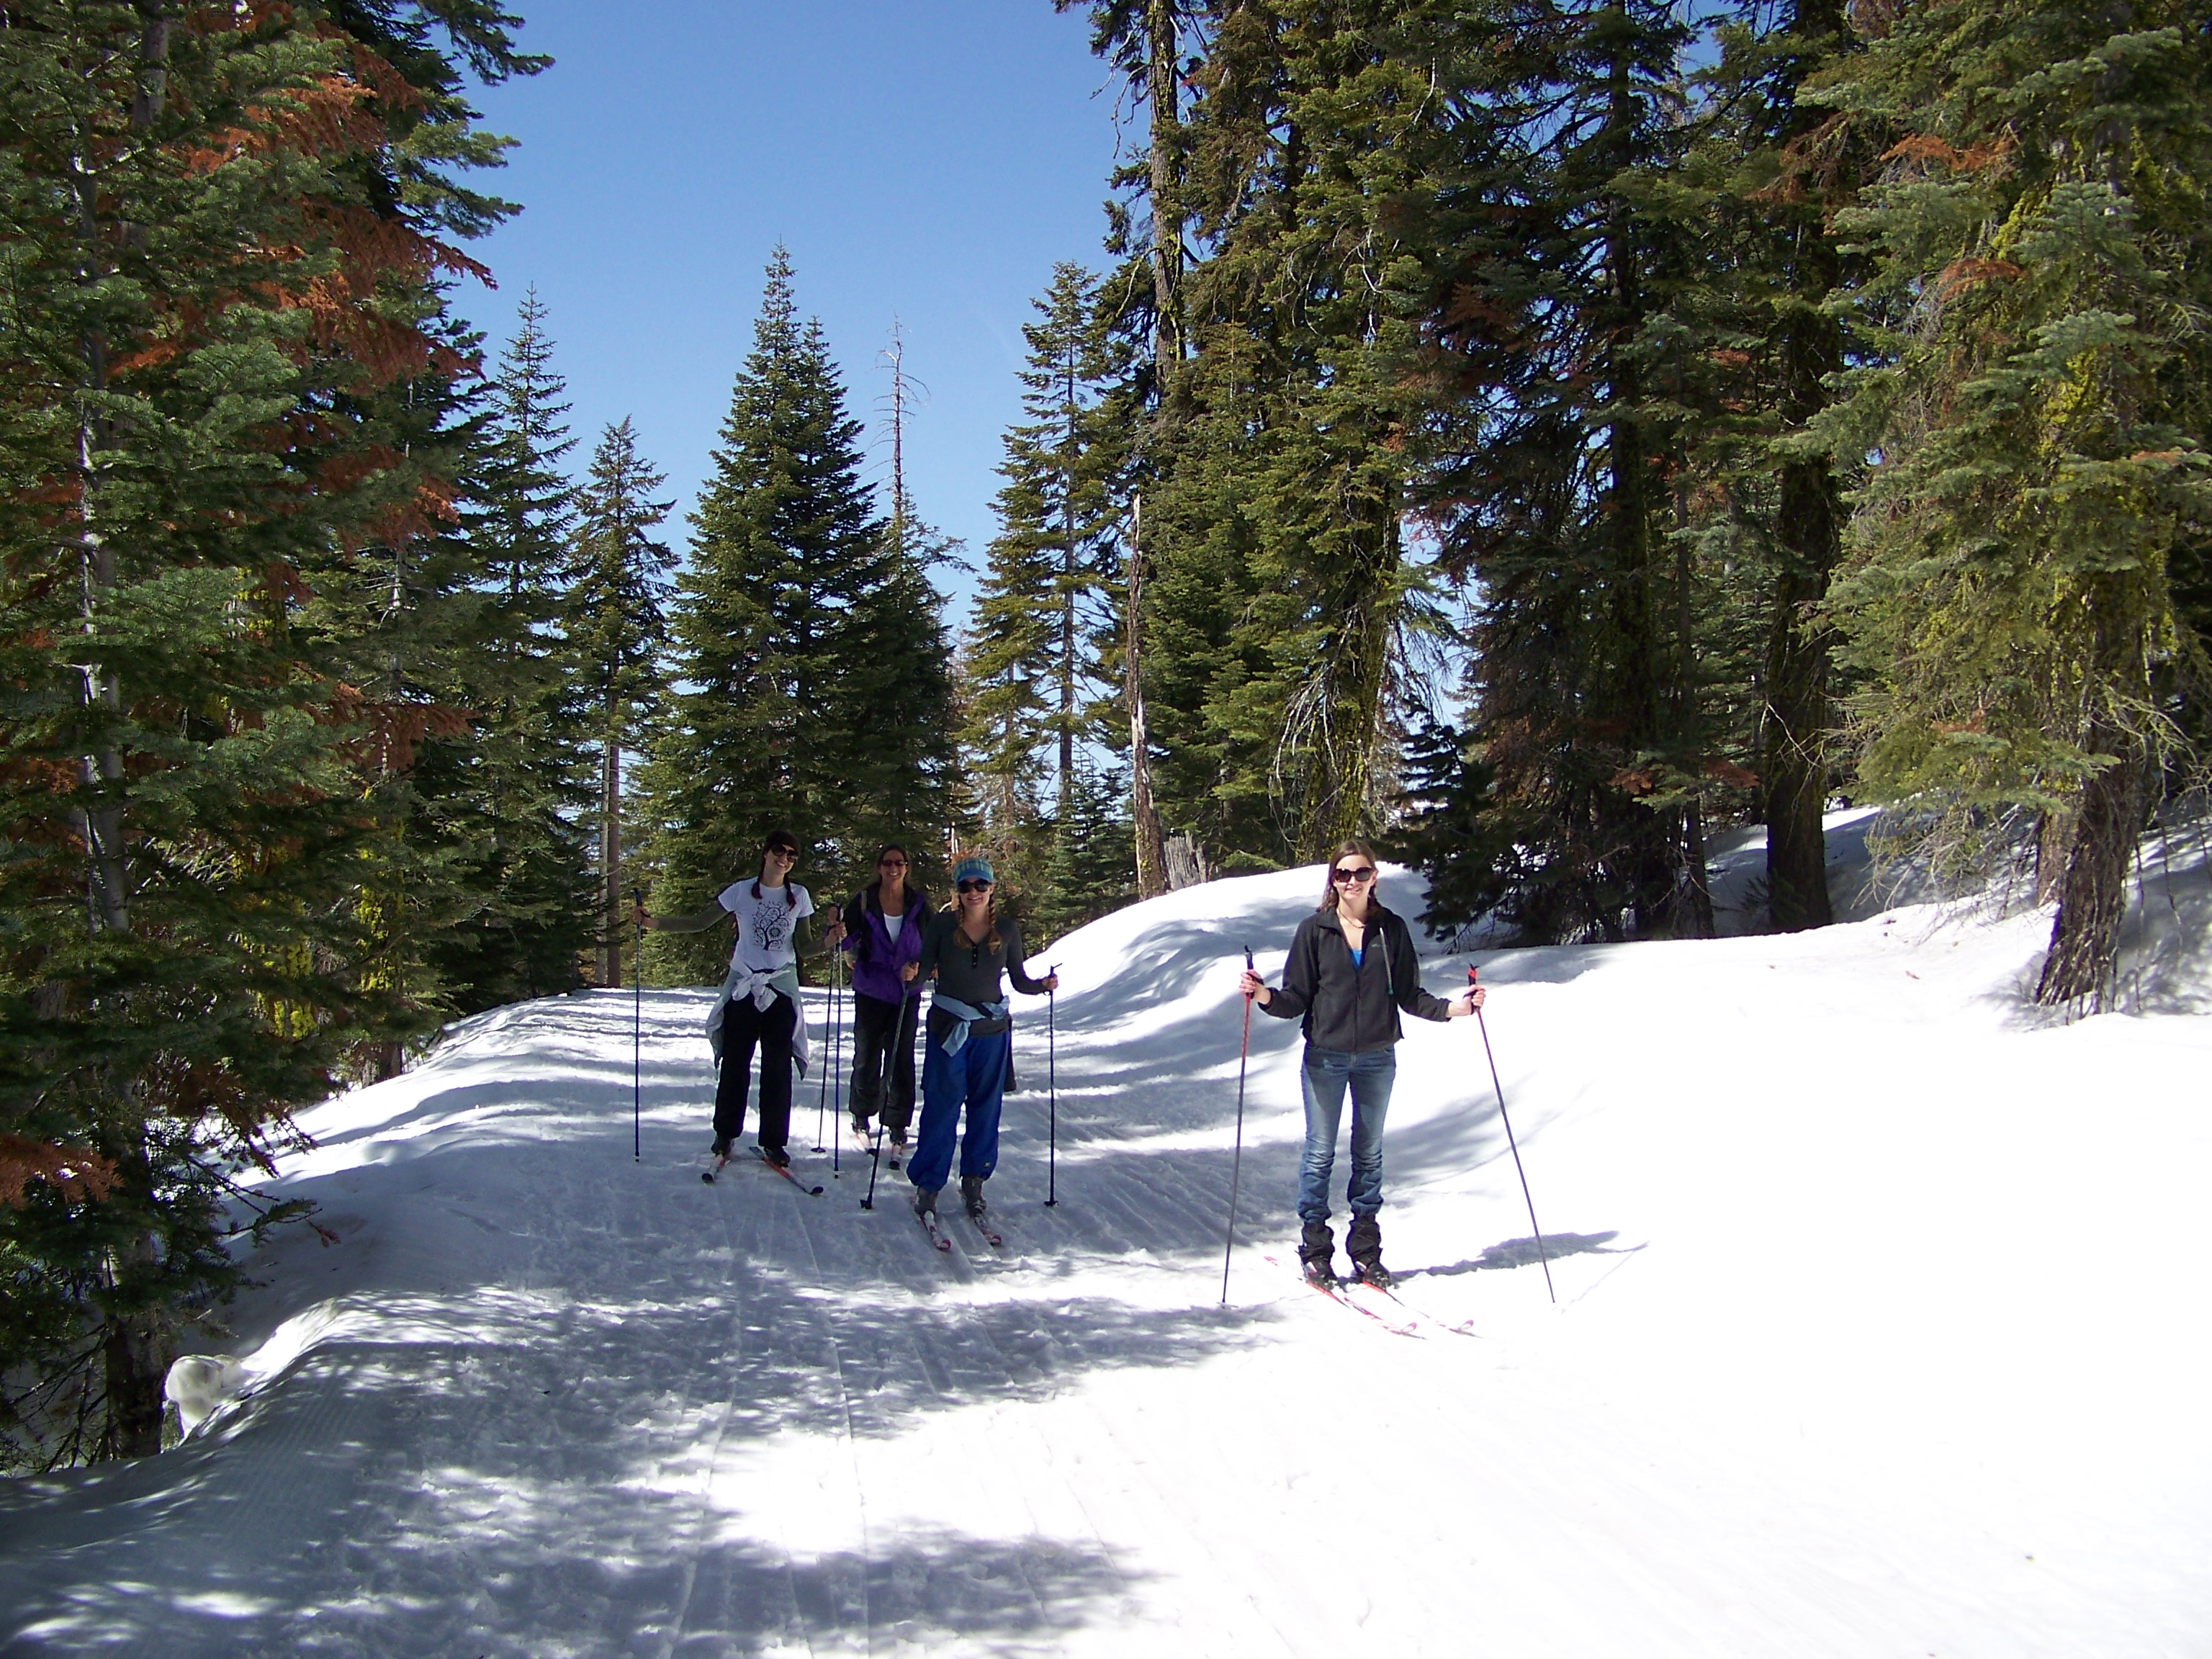 Skiing on Glacier Point Road